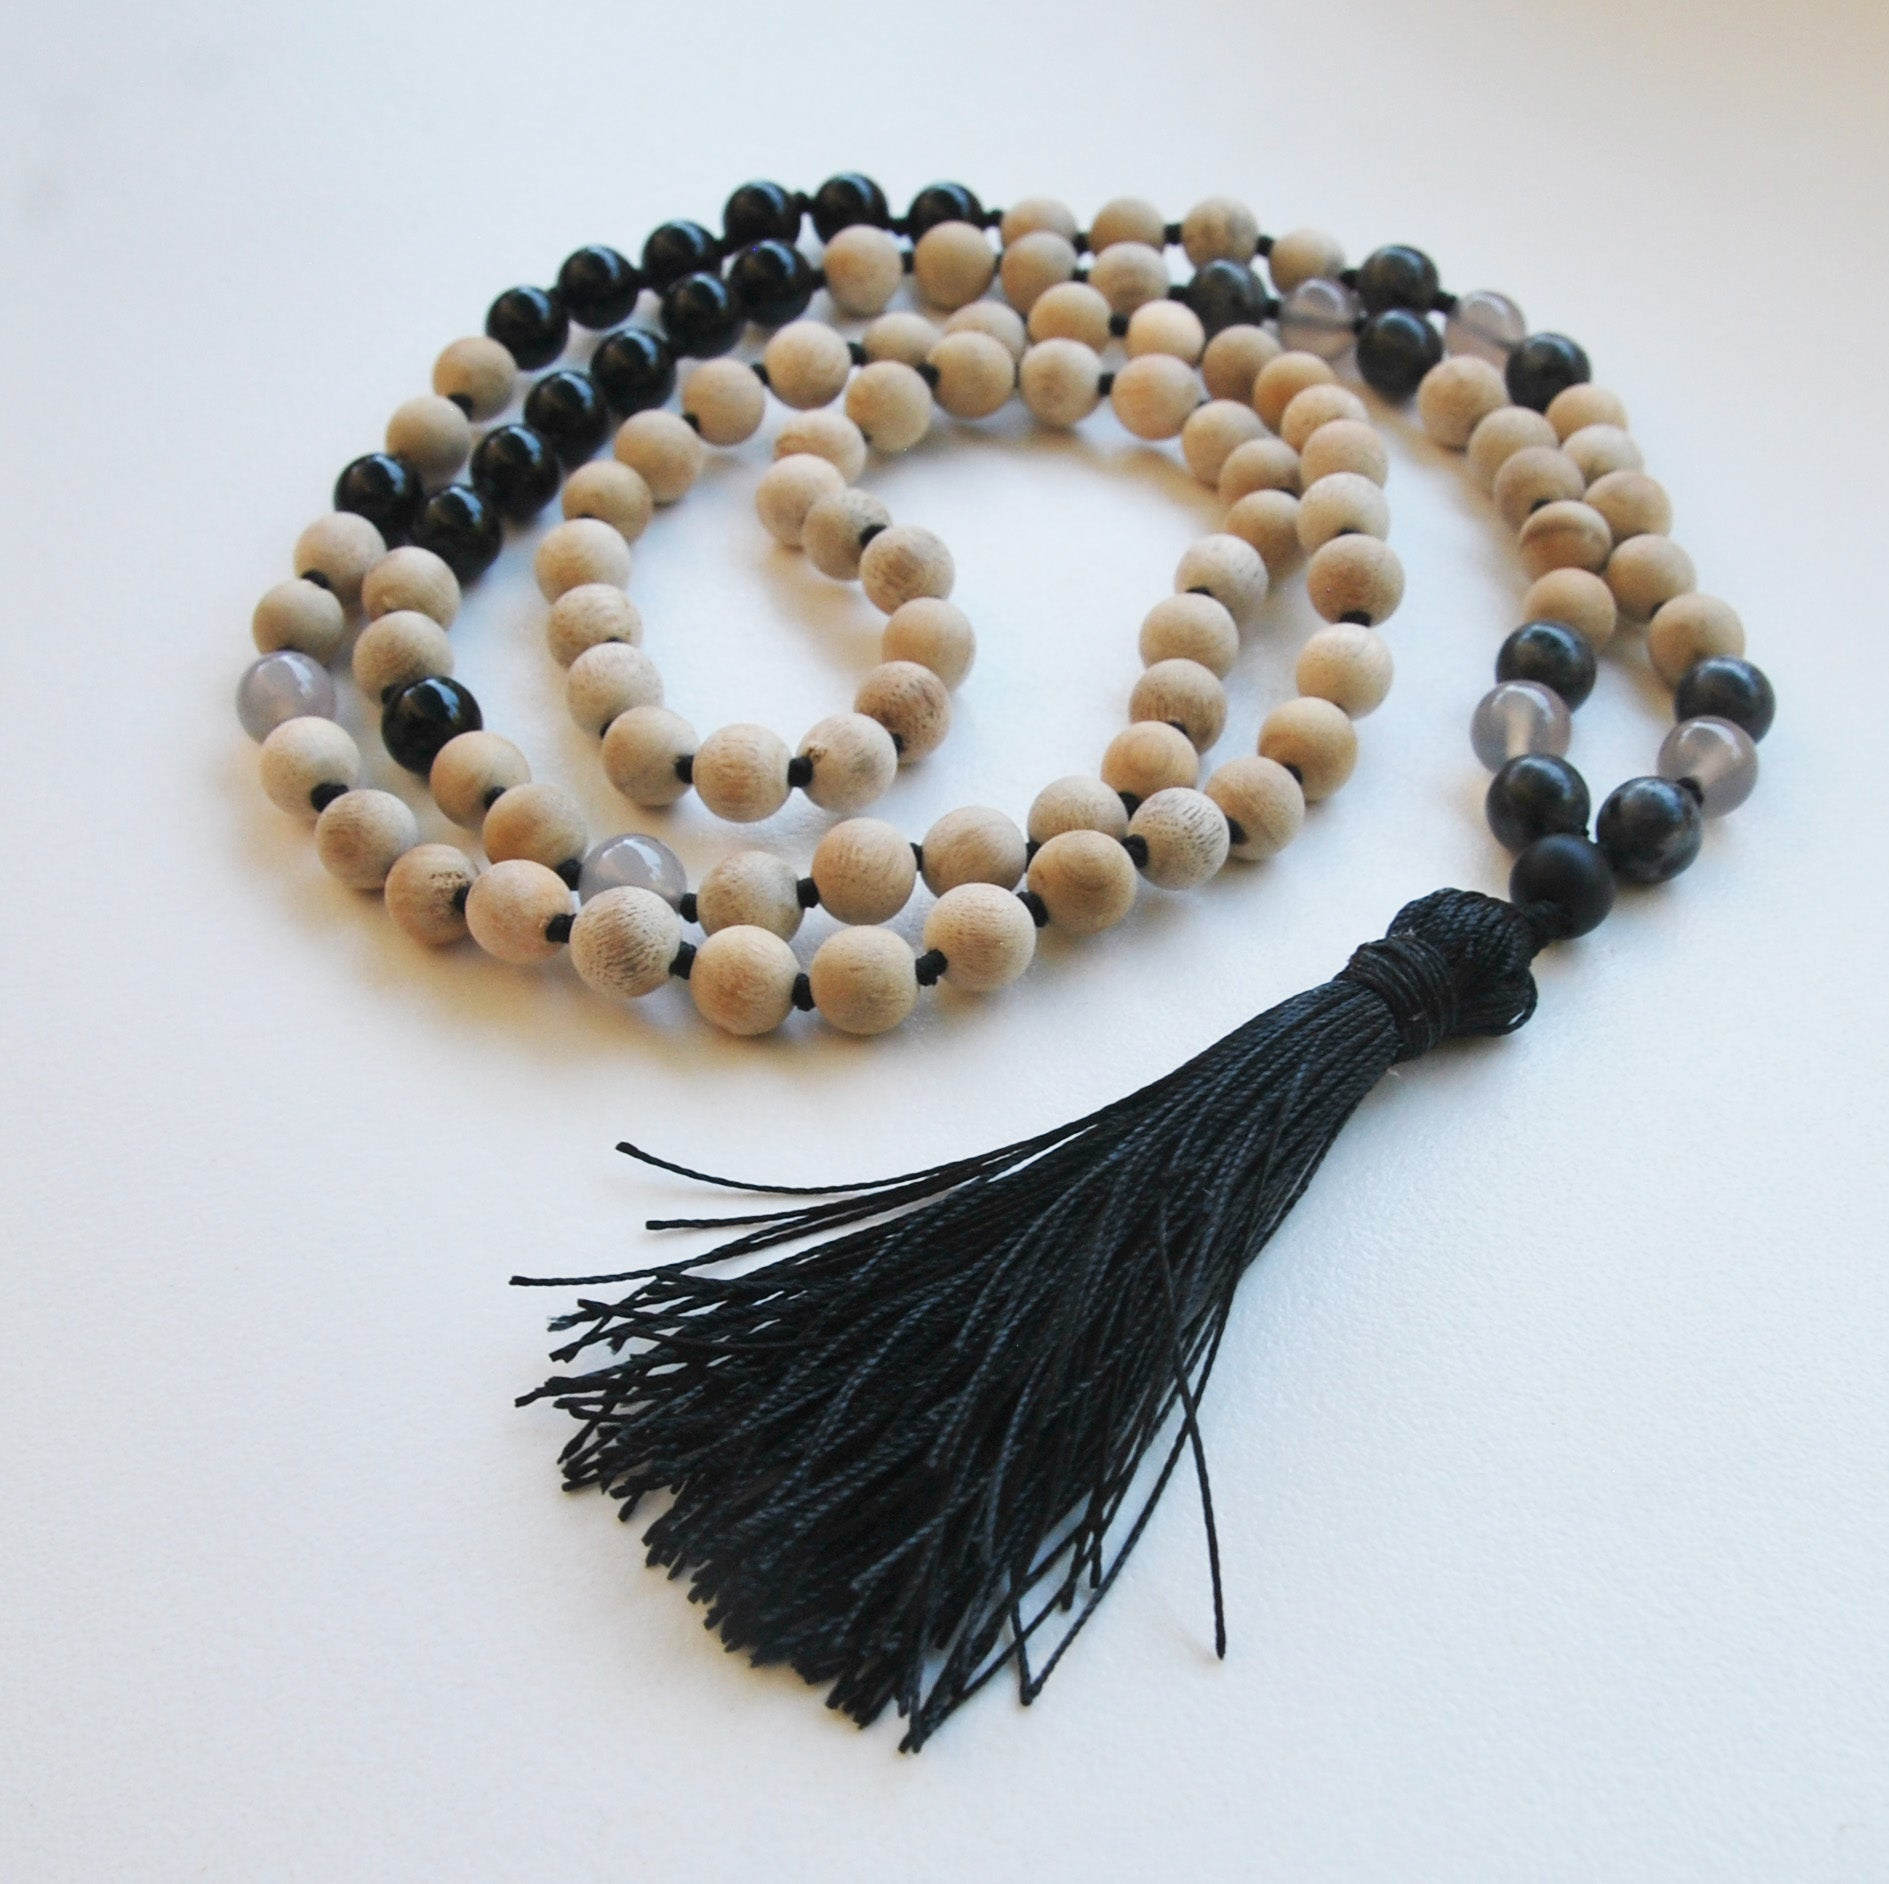 8mm Sandalwood & Obsidian 108 Knotted Mala Necklace with Colored Tassel